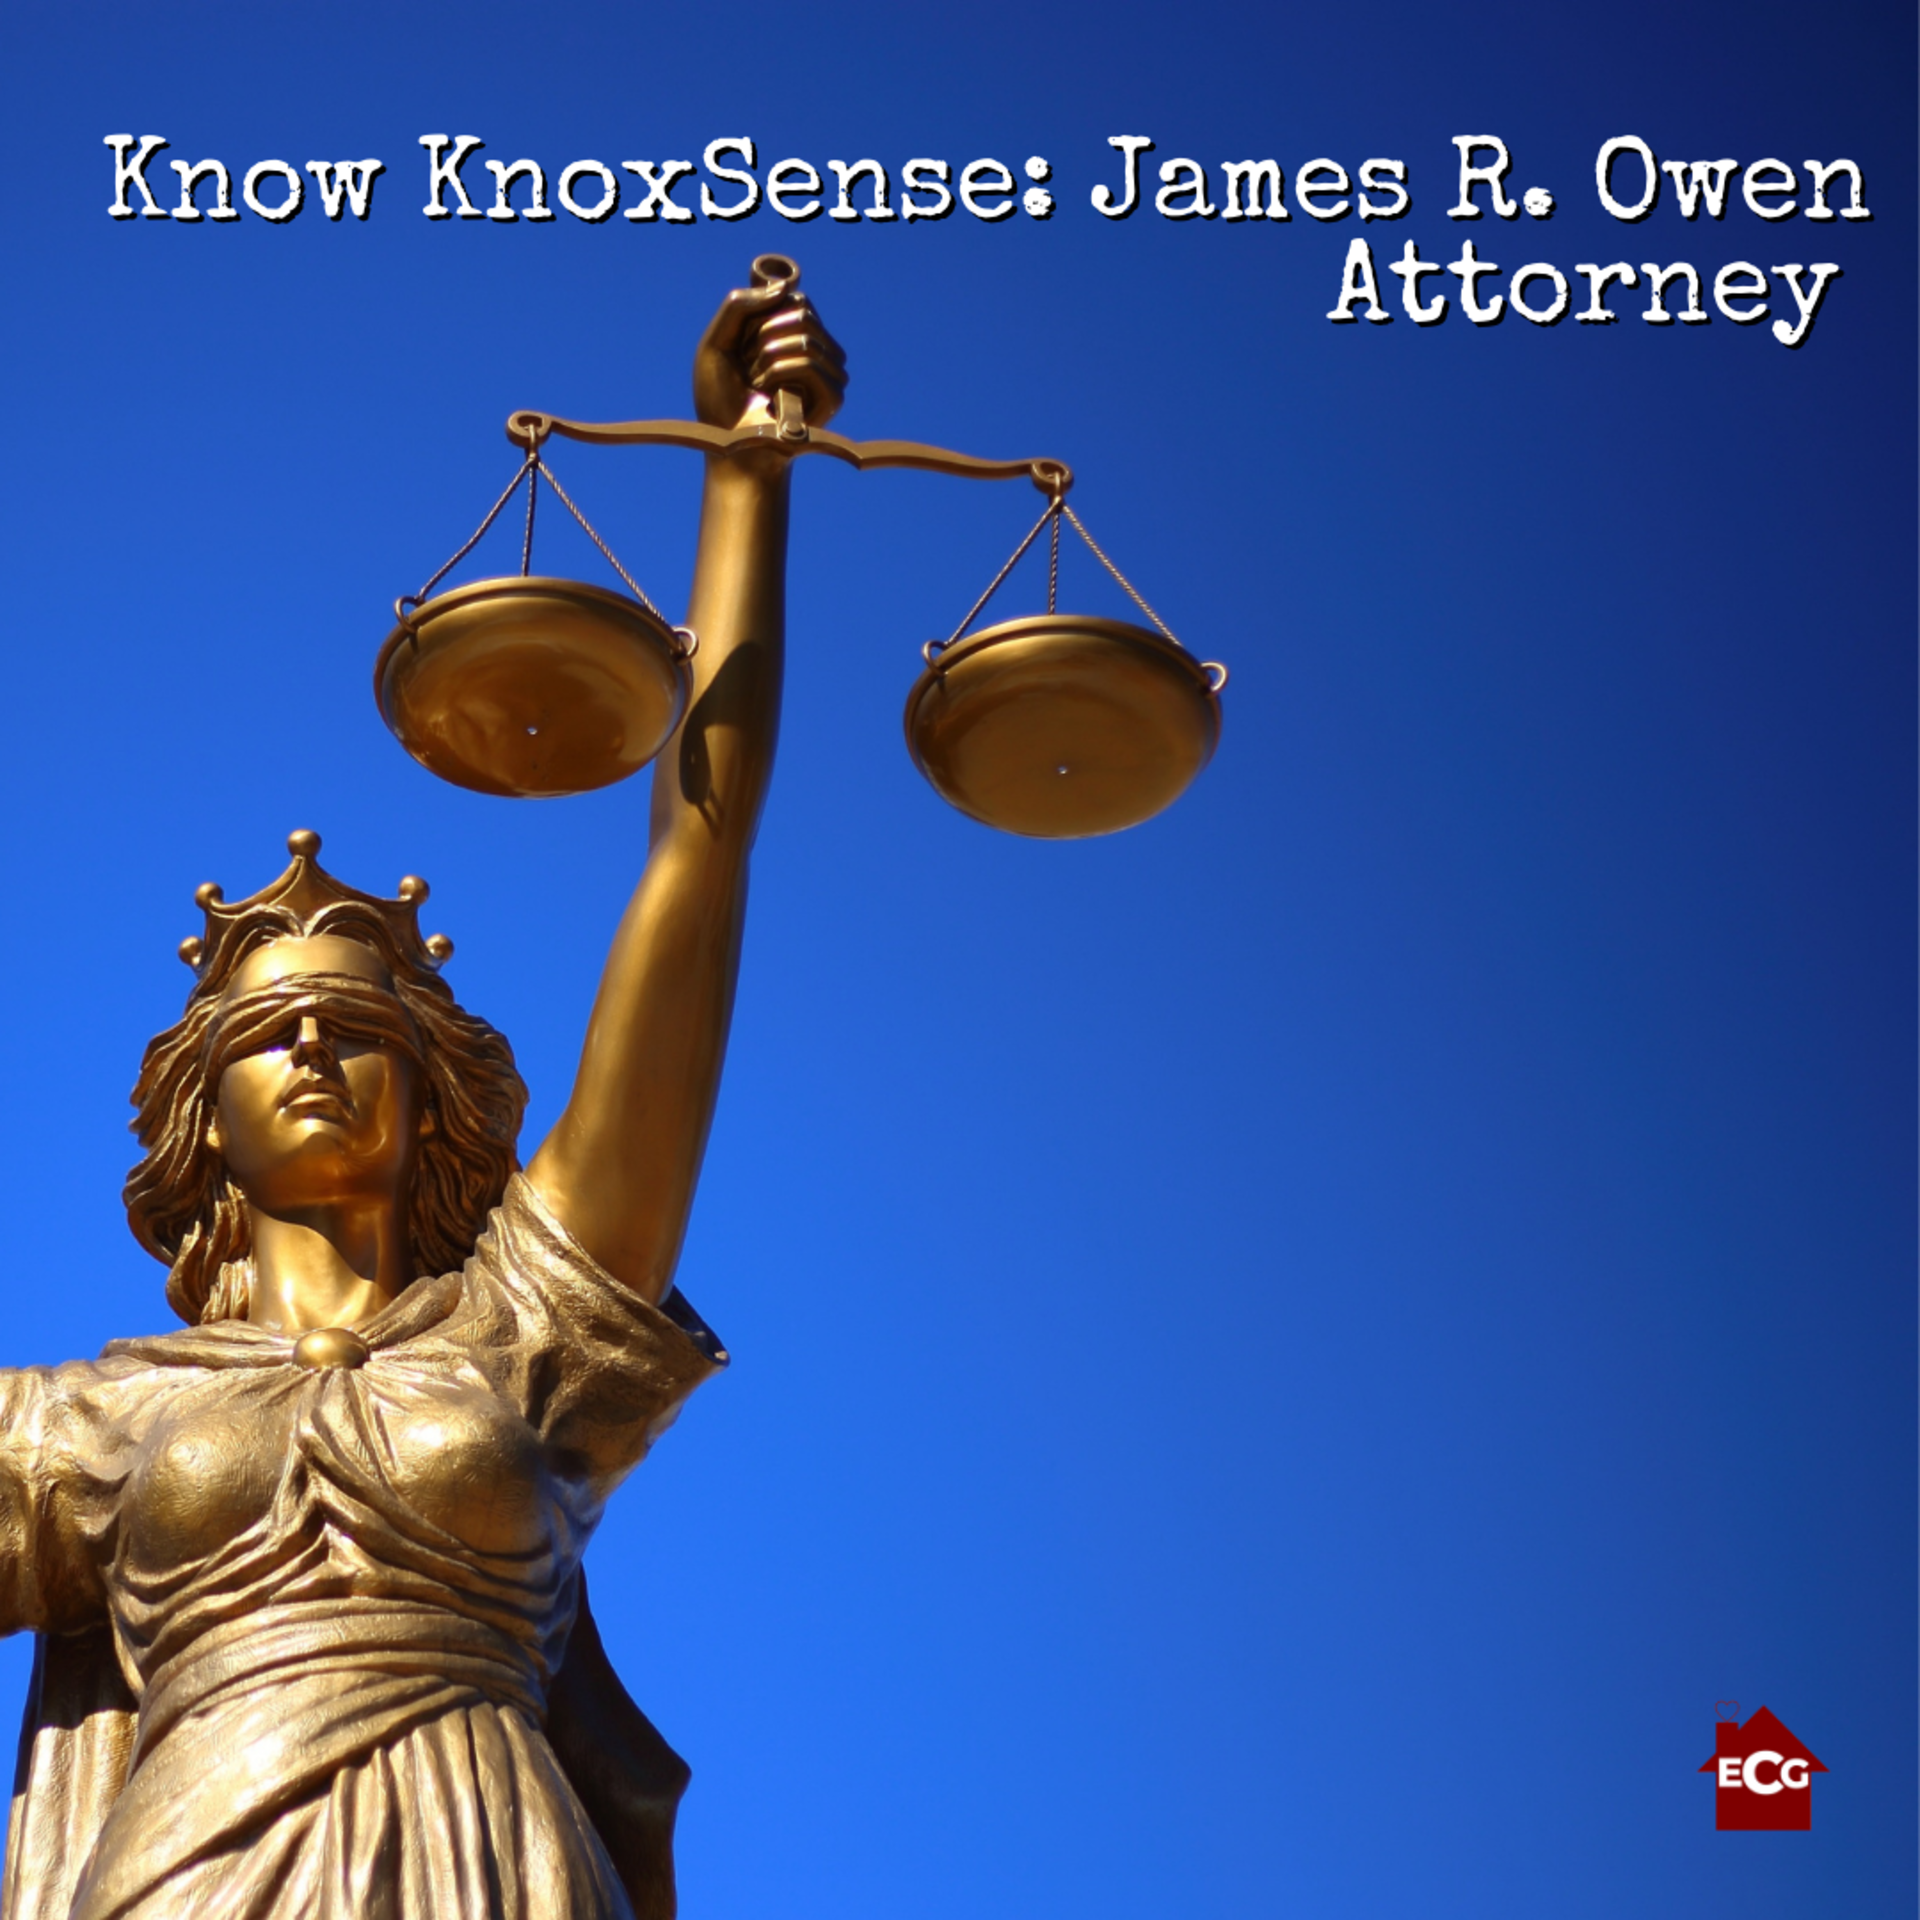 Know Knoxsense: James R. Owen